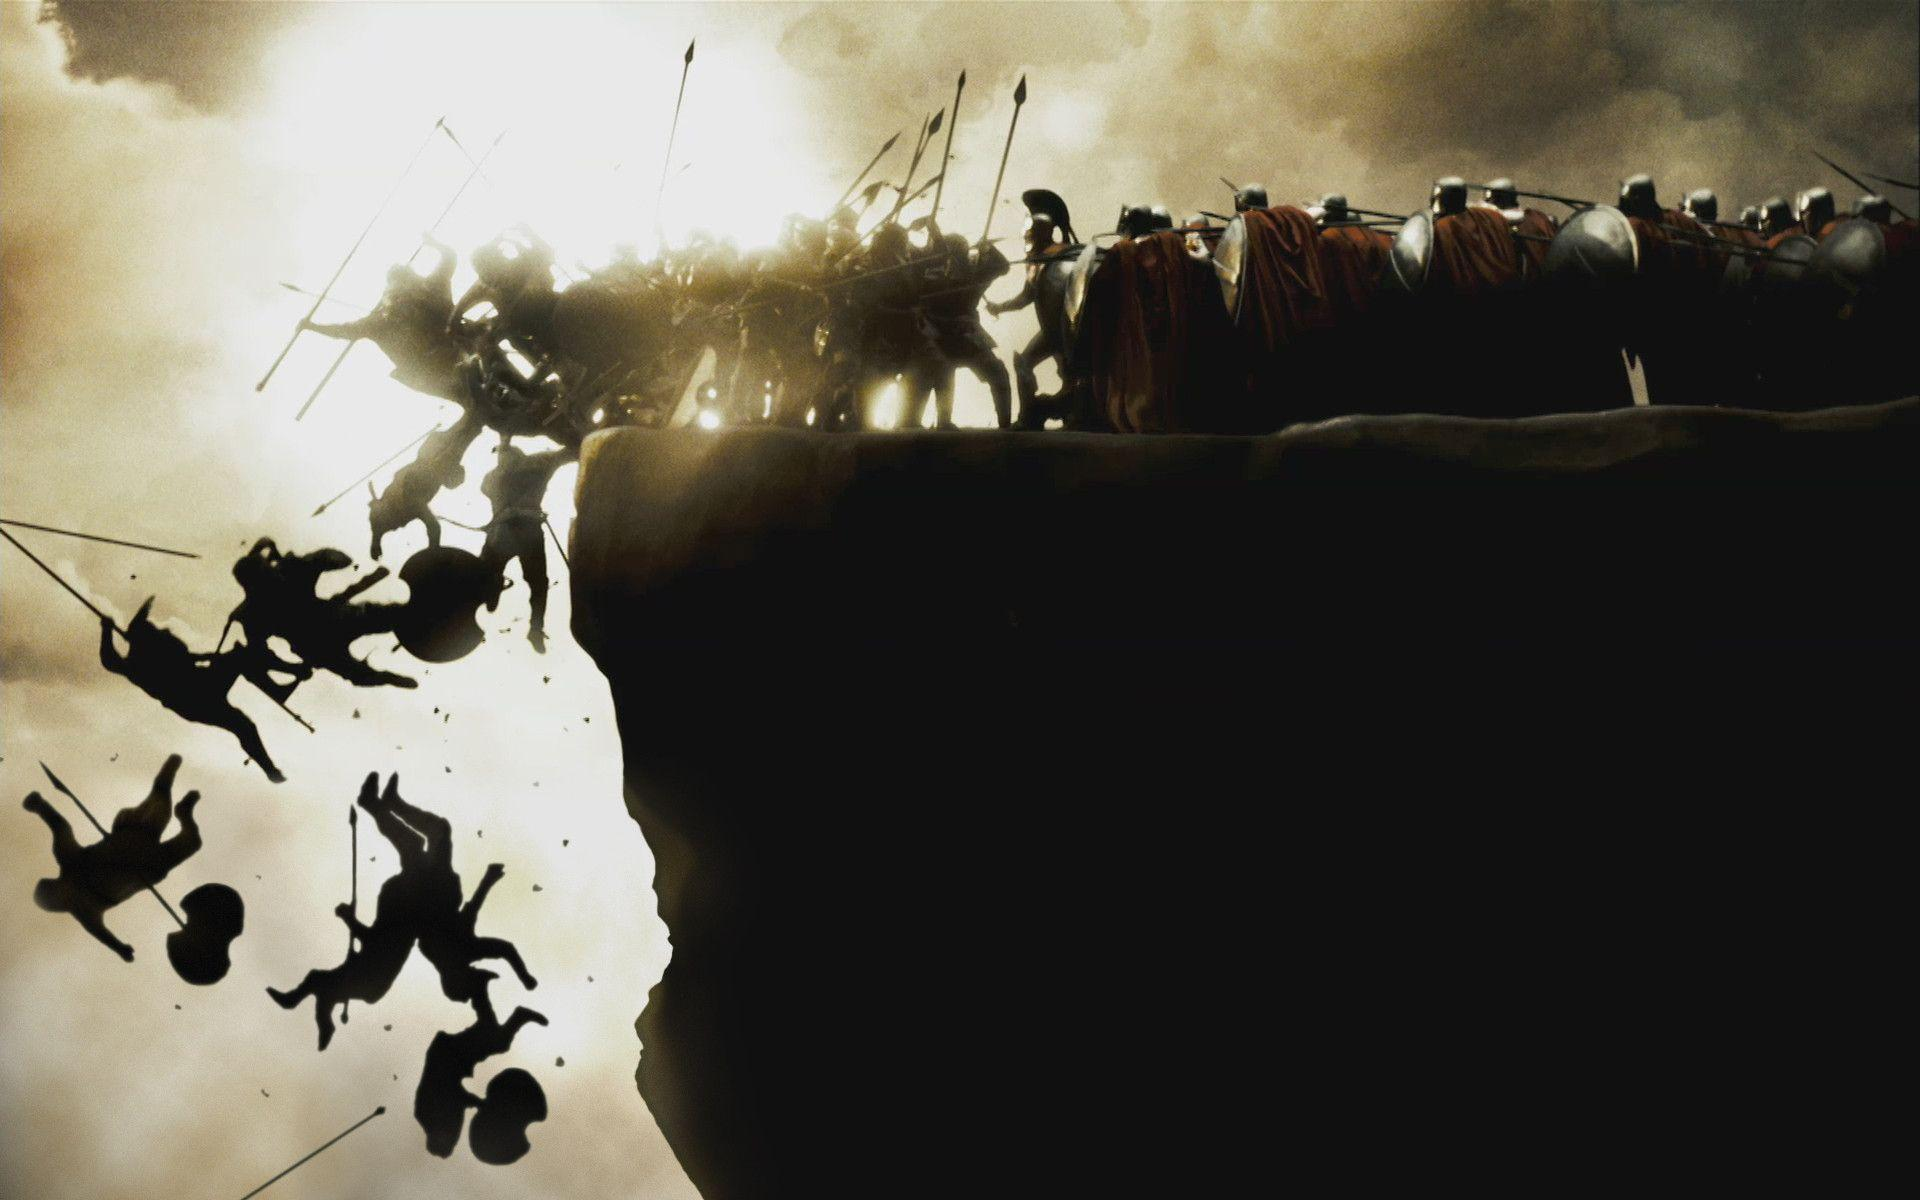 300 Full Movie >> Spartans 300 Wallpapers - Wallpaper Cave